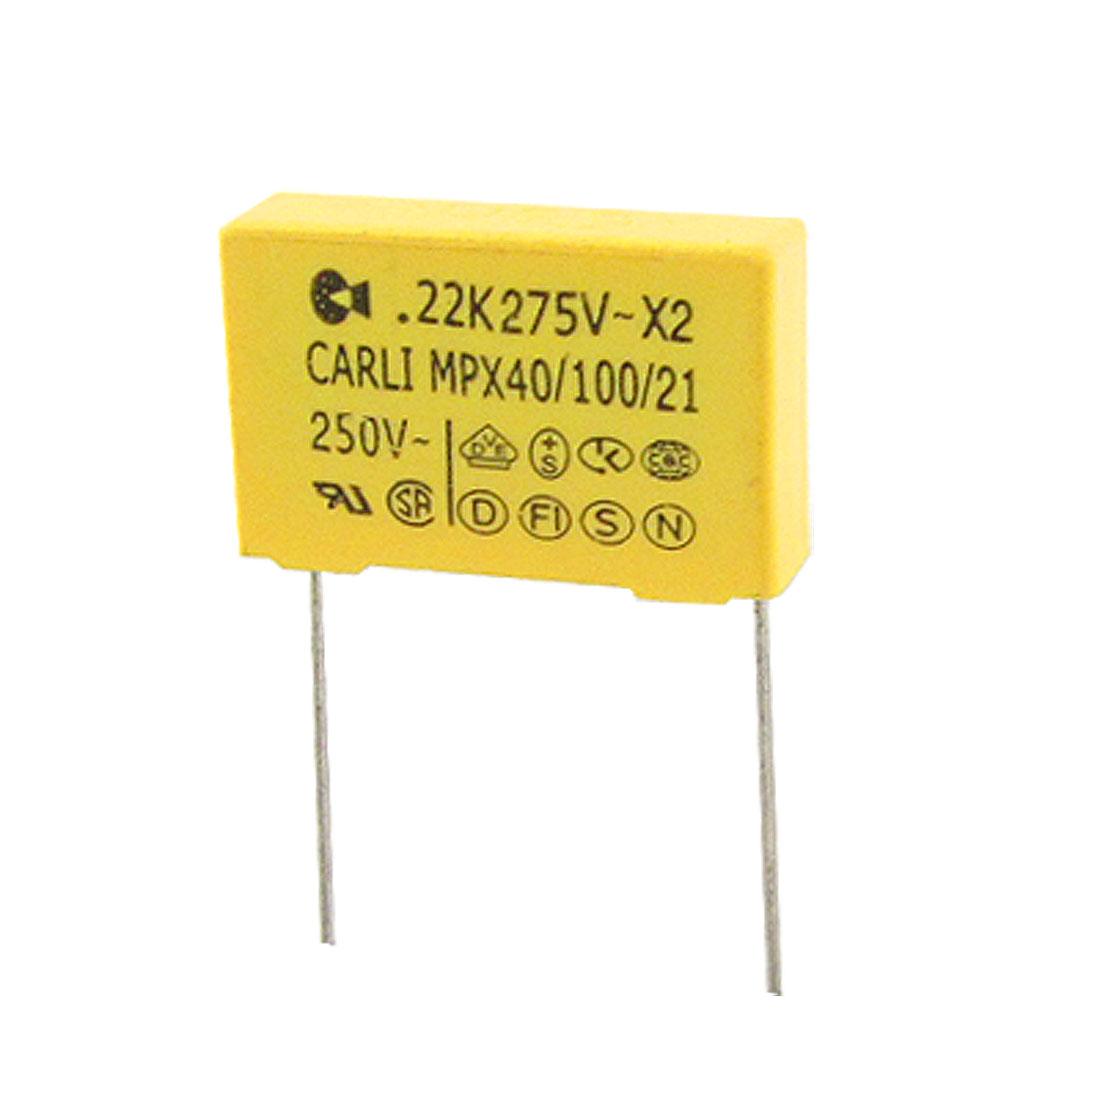 10 Pcs AC 275V 0.22uF Polypropylene Film DIP Safety Capacitors MPX X2